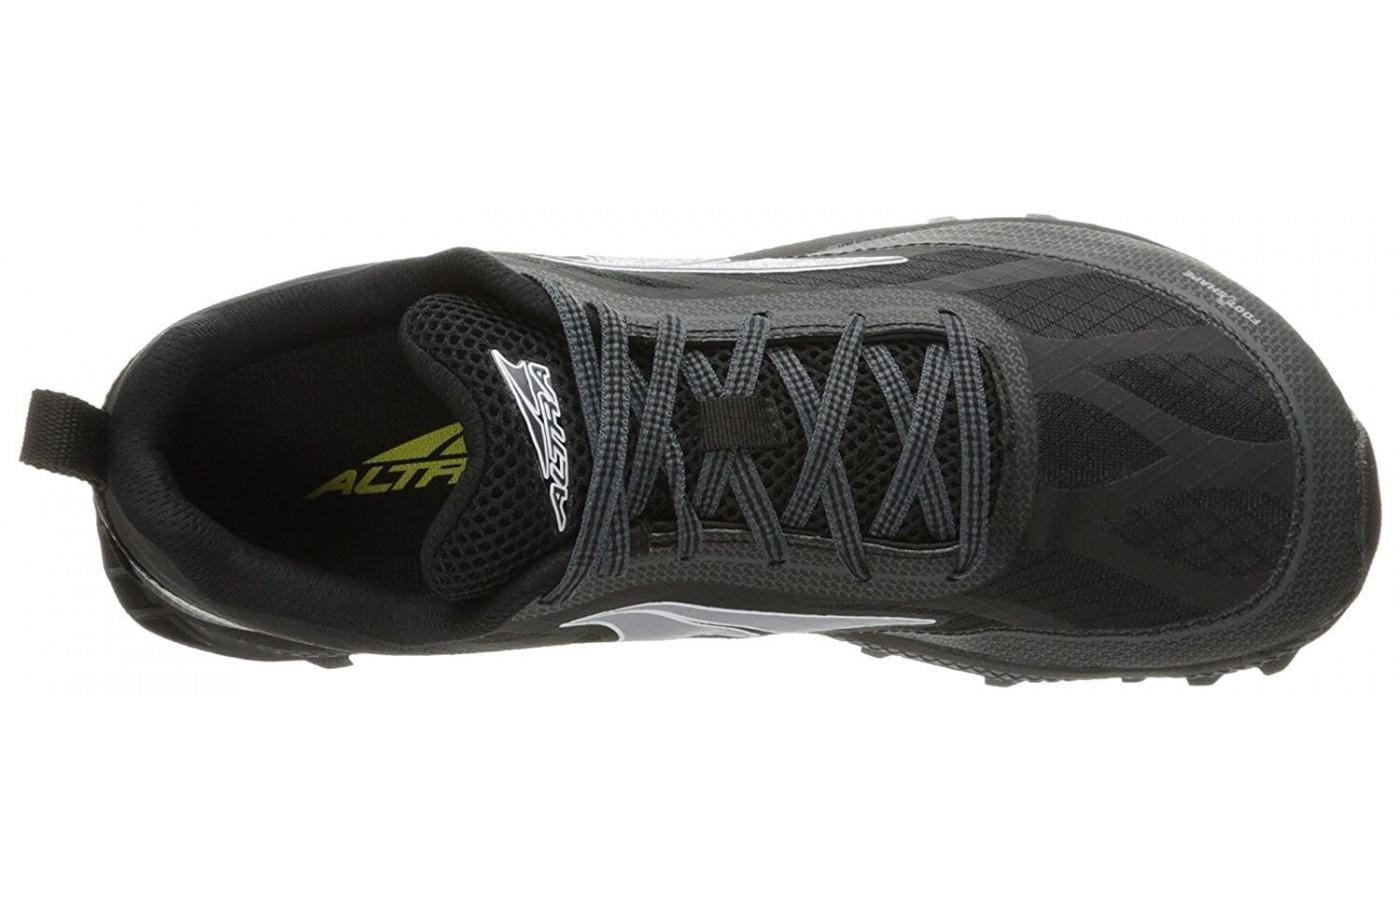 The upper added overlays for protection and durability.